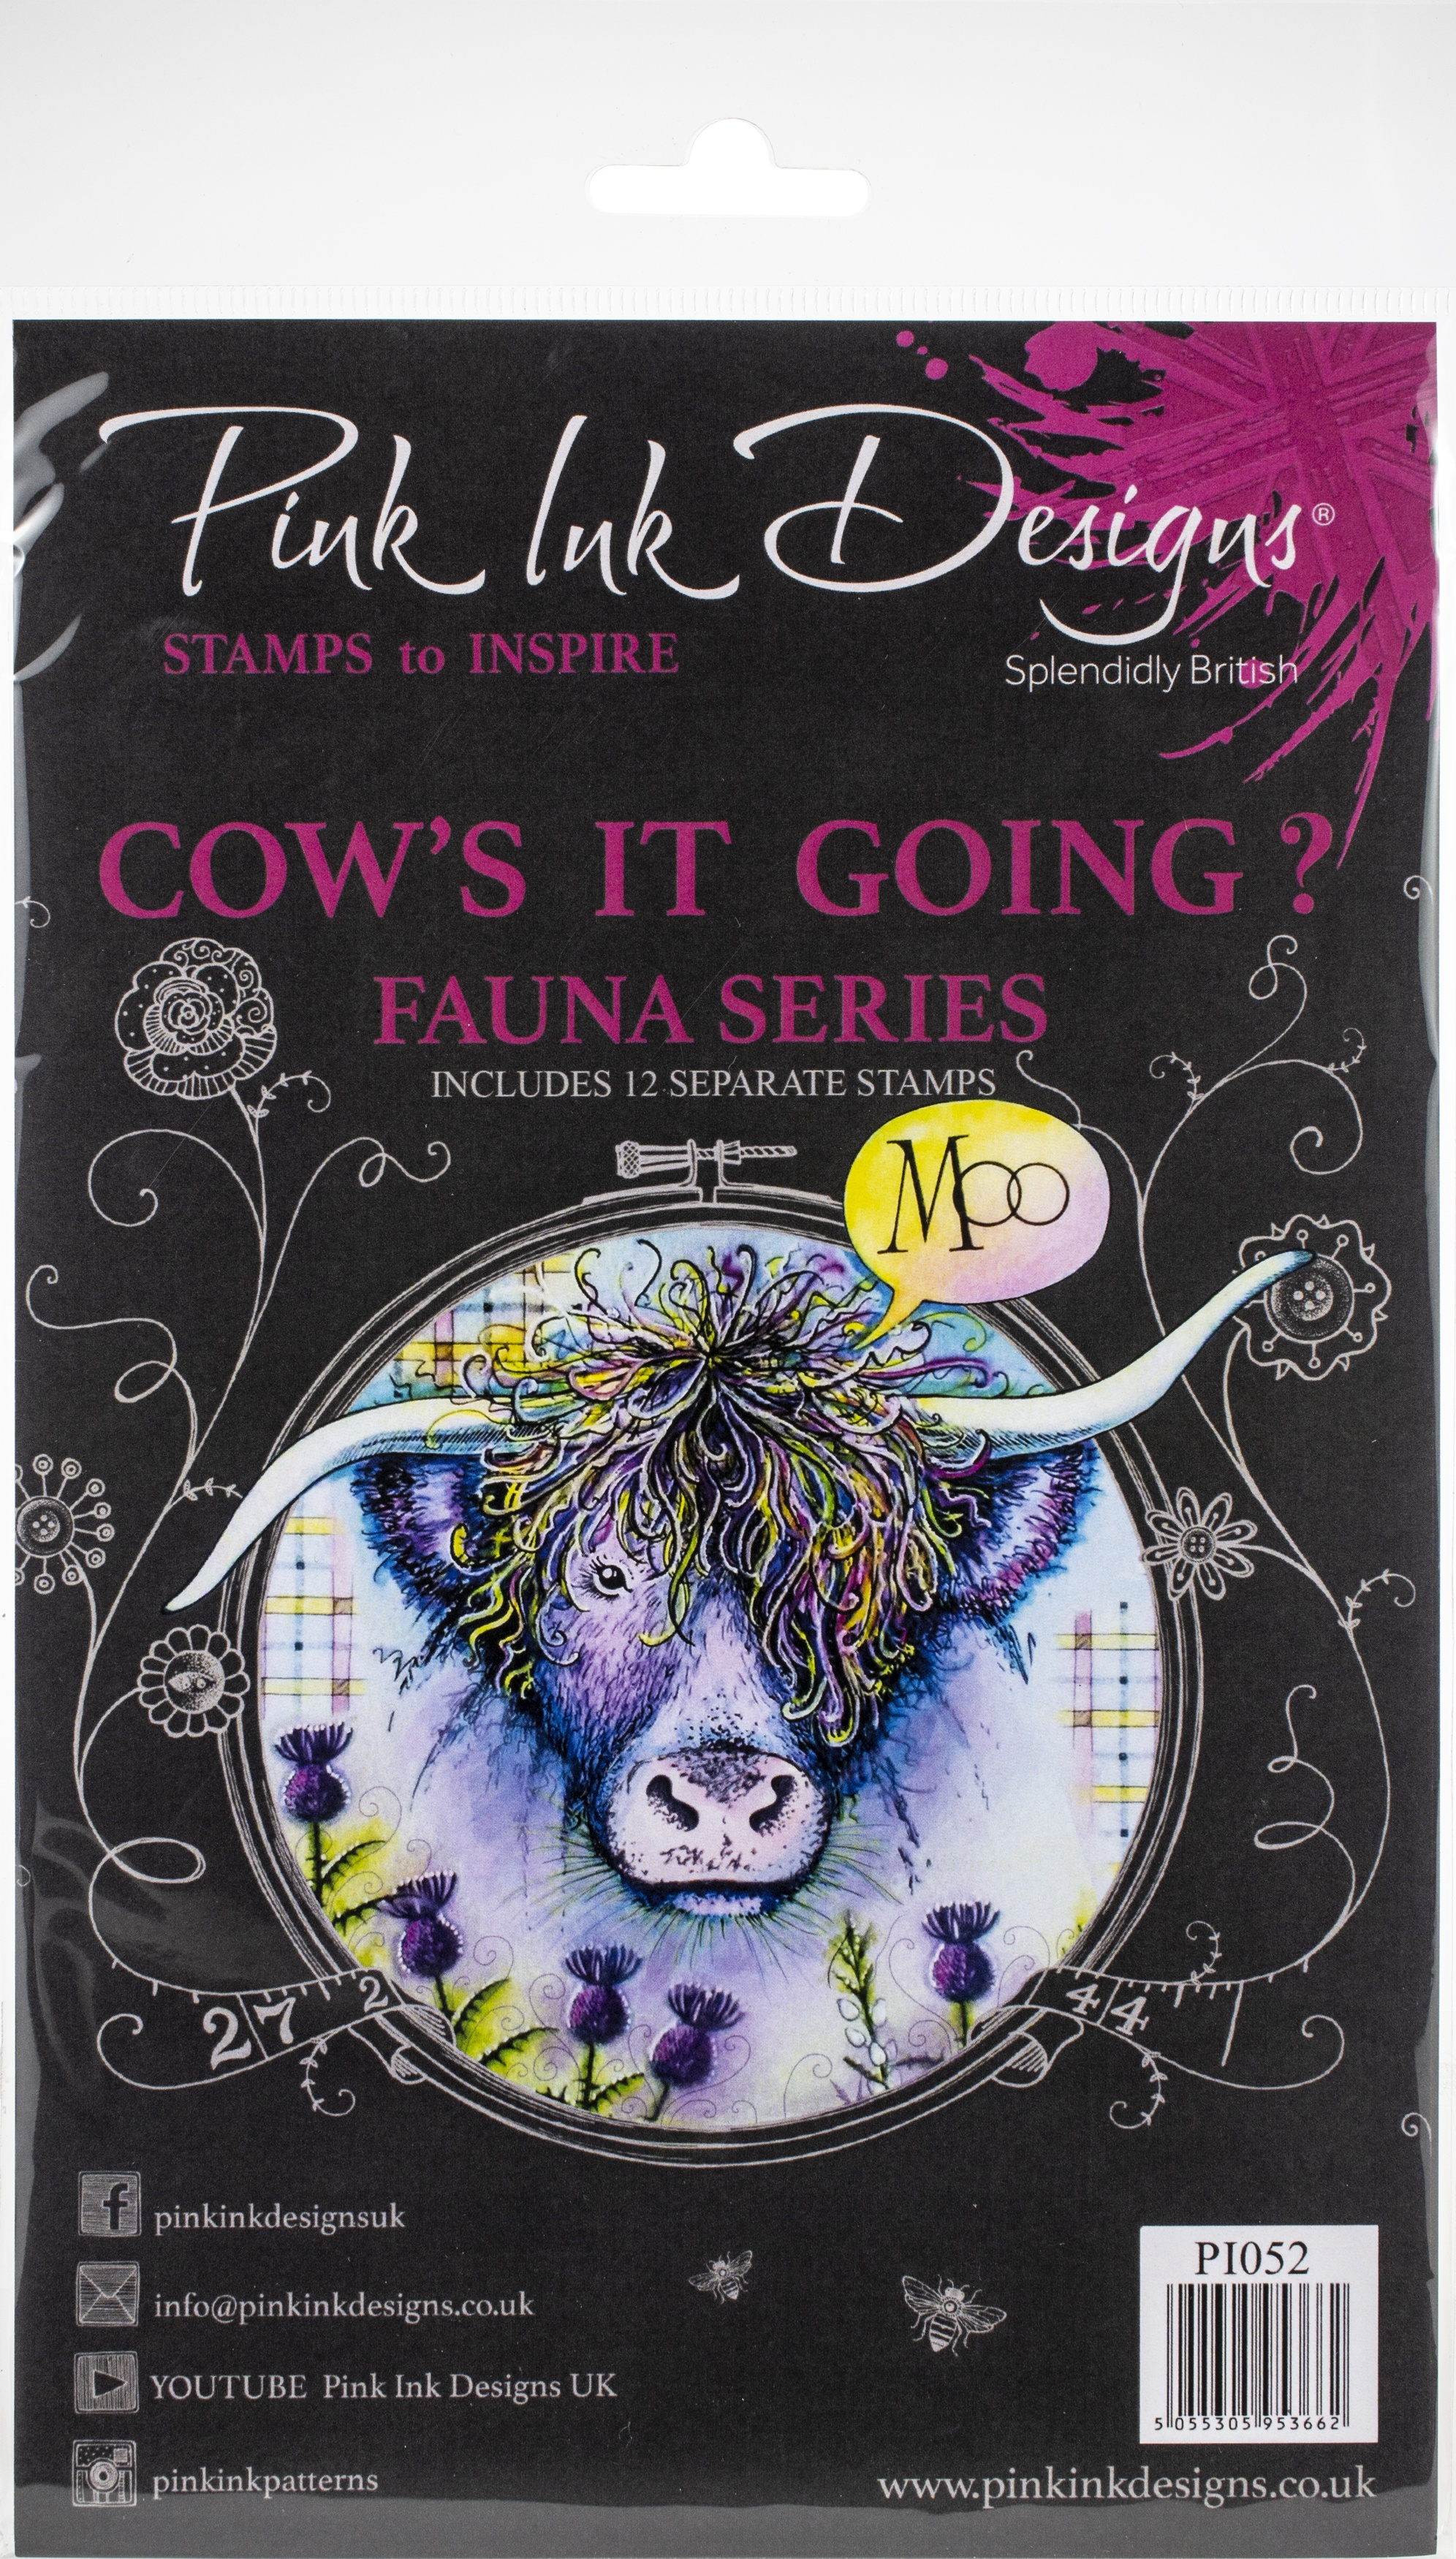 Pink Ink Designs A5 Clear Stamp Set -Cow's It Going